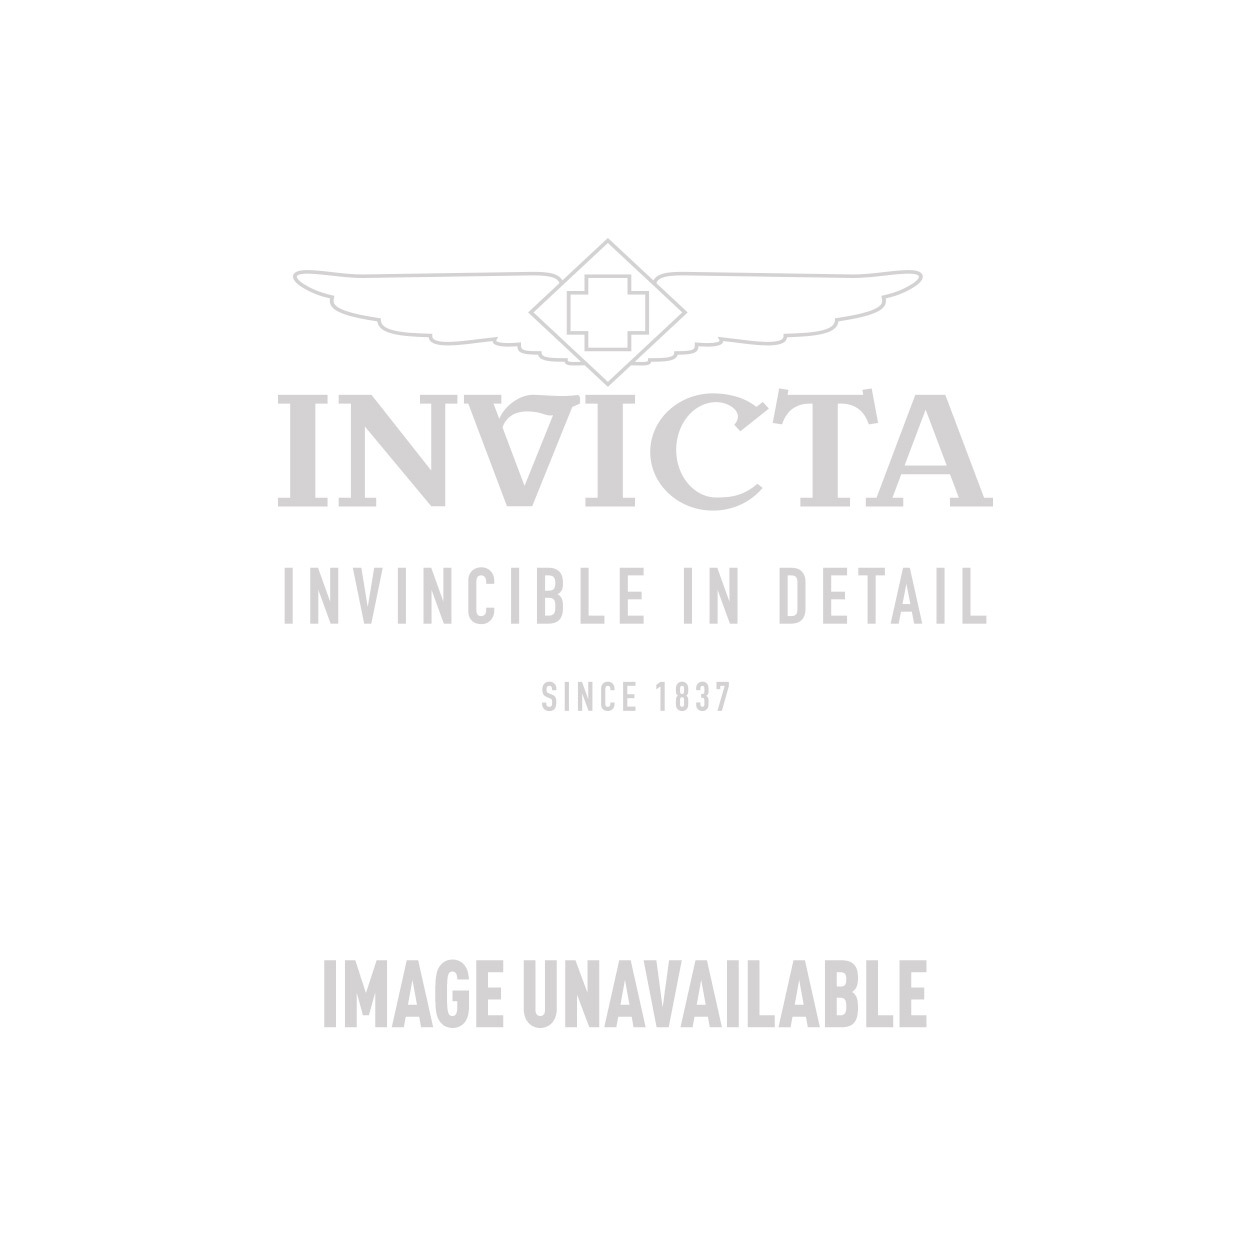 Invicta I-Force Quartz Watch - Stainless Steel case with Black tone Leather band - Model 20129